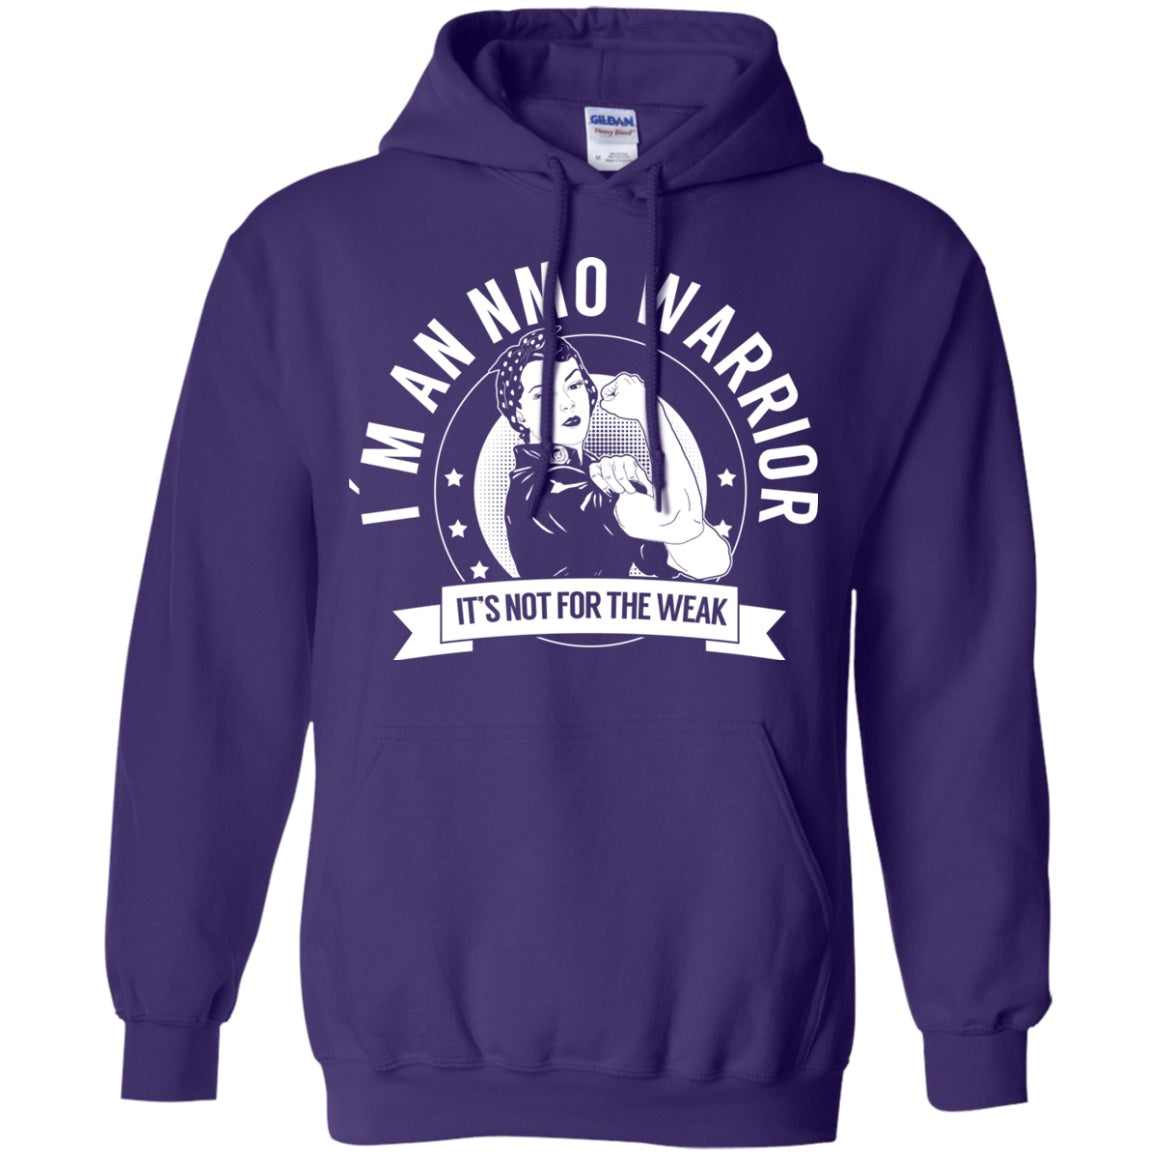 Neuromyelitis Optica - NMO Warrior NFTW Pullover Hoodie 8 oz. - The Unchargeables